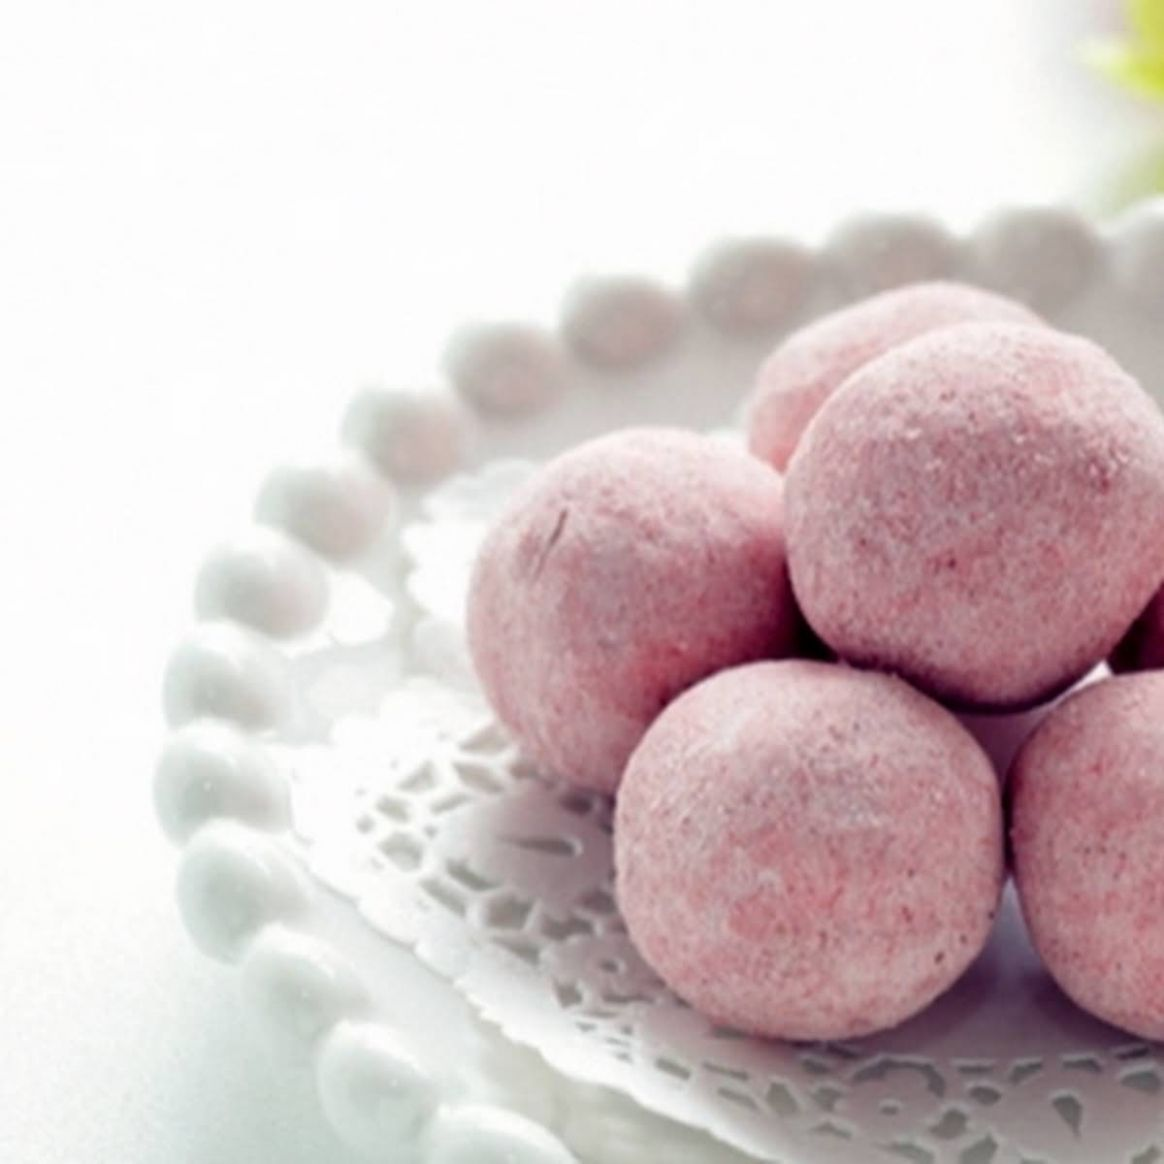 Strawberry Cheesecake Fat Bombs - Dessert Recipes Using Xylitol